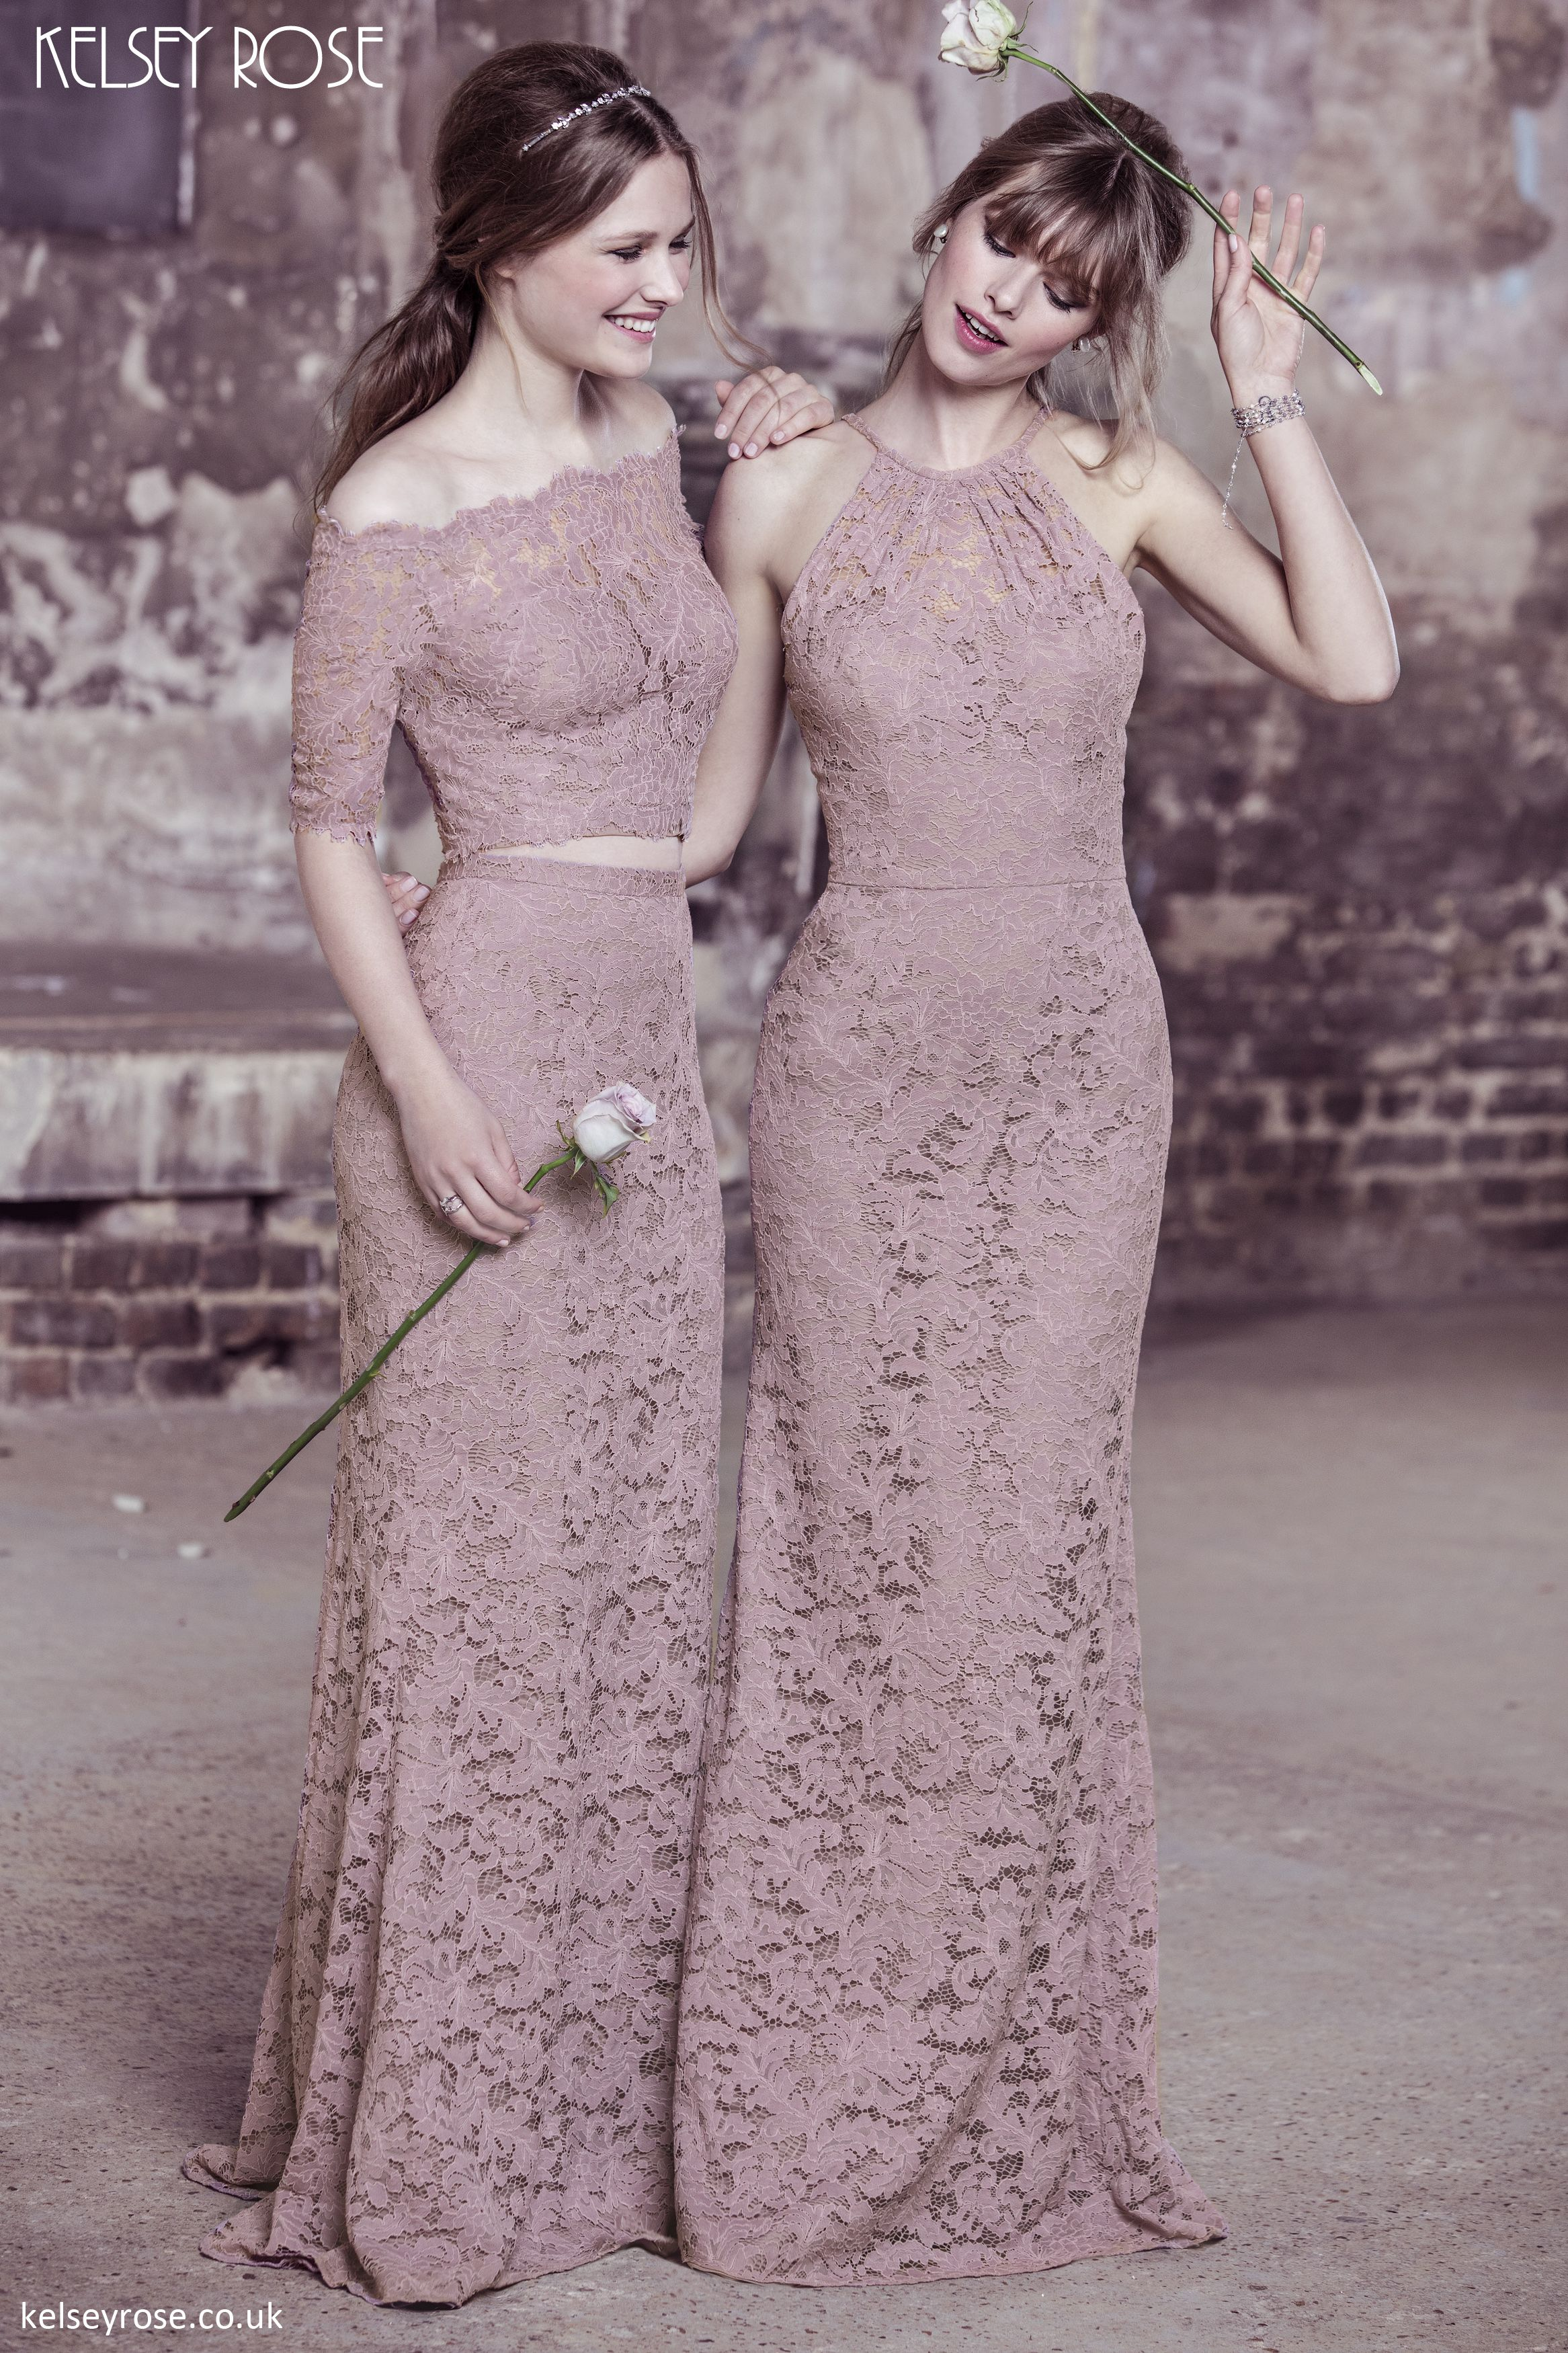 Lace dress rose  Kelsey Rose  Beautiful dusty pink lace dresses and twopieces